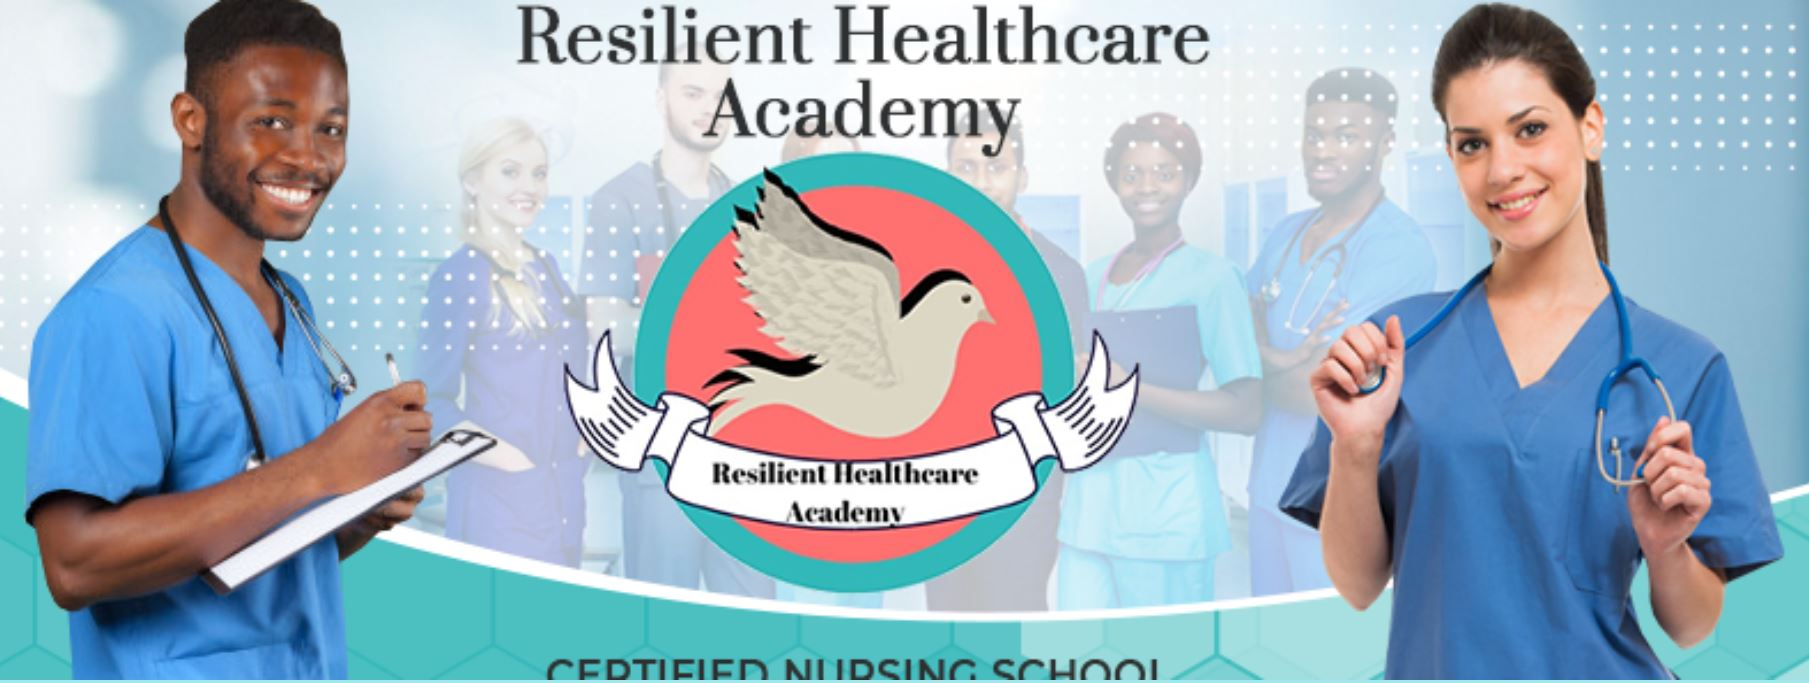 Resilient Healthcare Academy